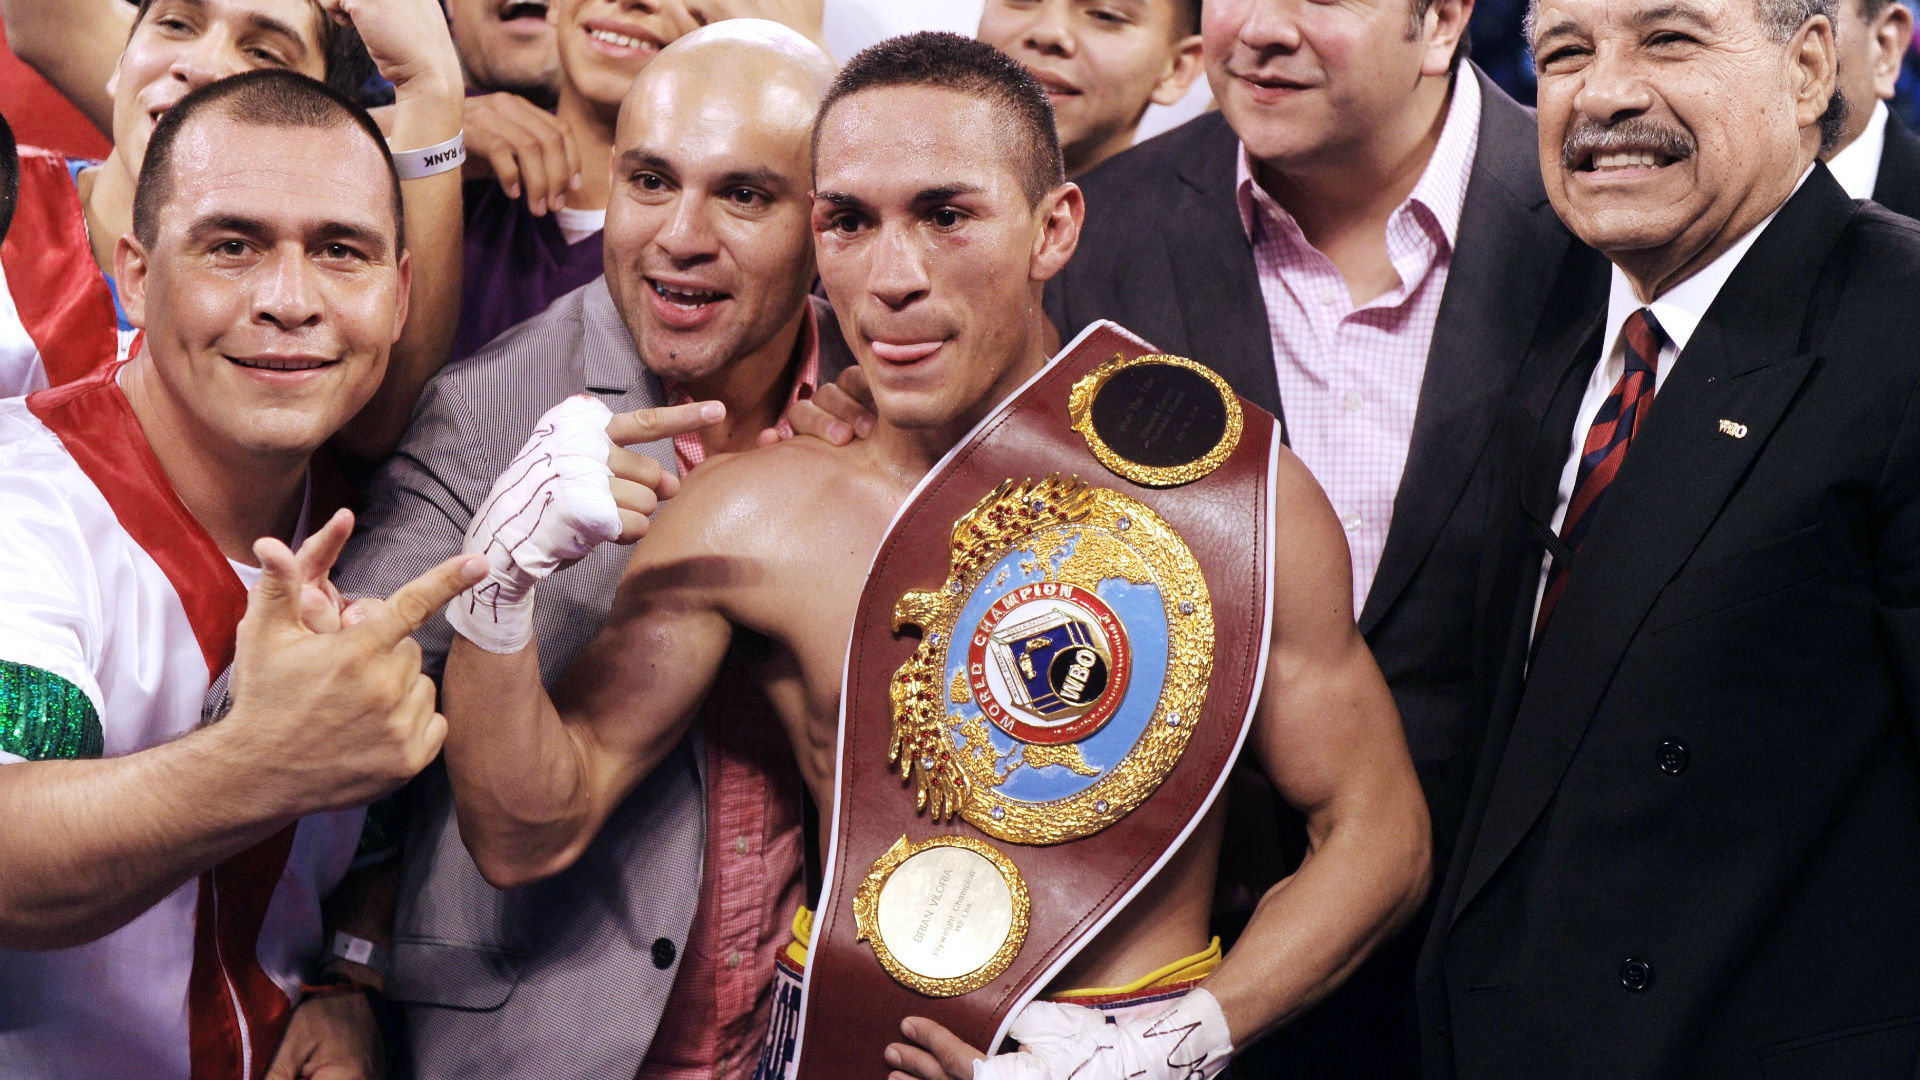 Juan Francisco Estrada vs. Roman 'Chocolatito' Gonzalez 2: Date, fight time, odds, TV channel and live stream